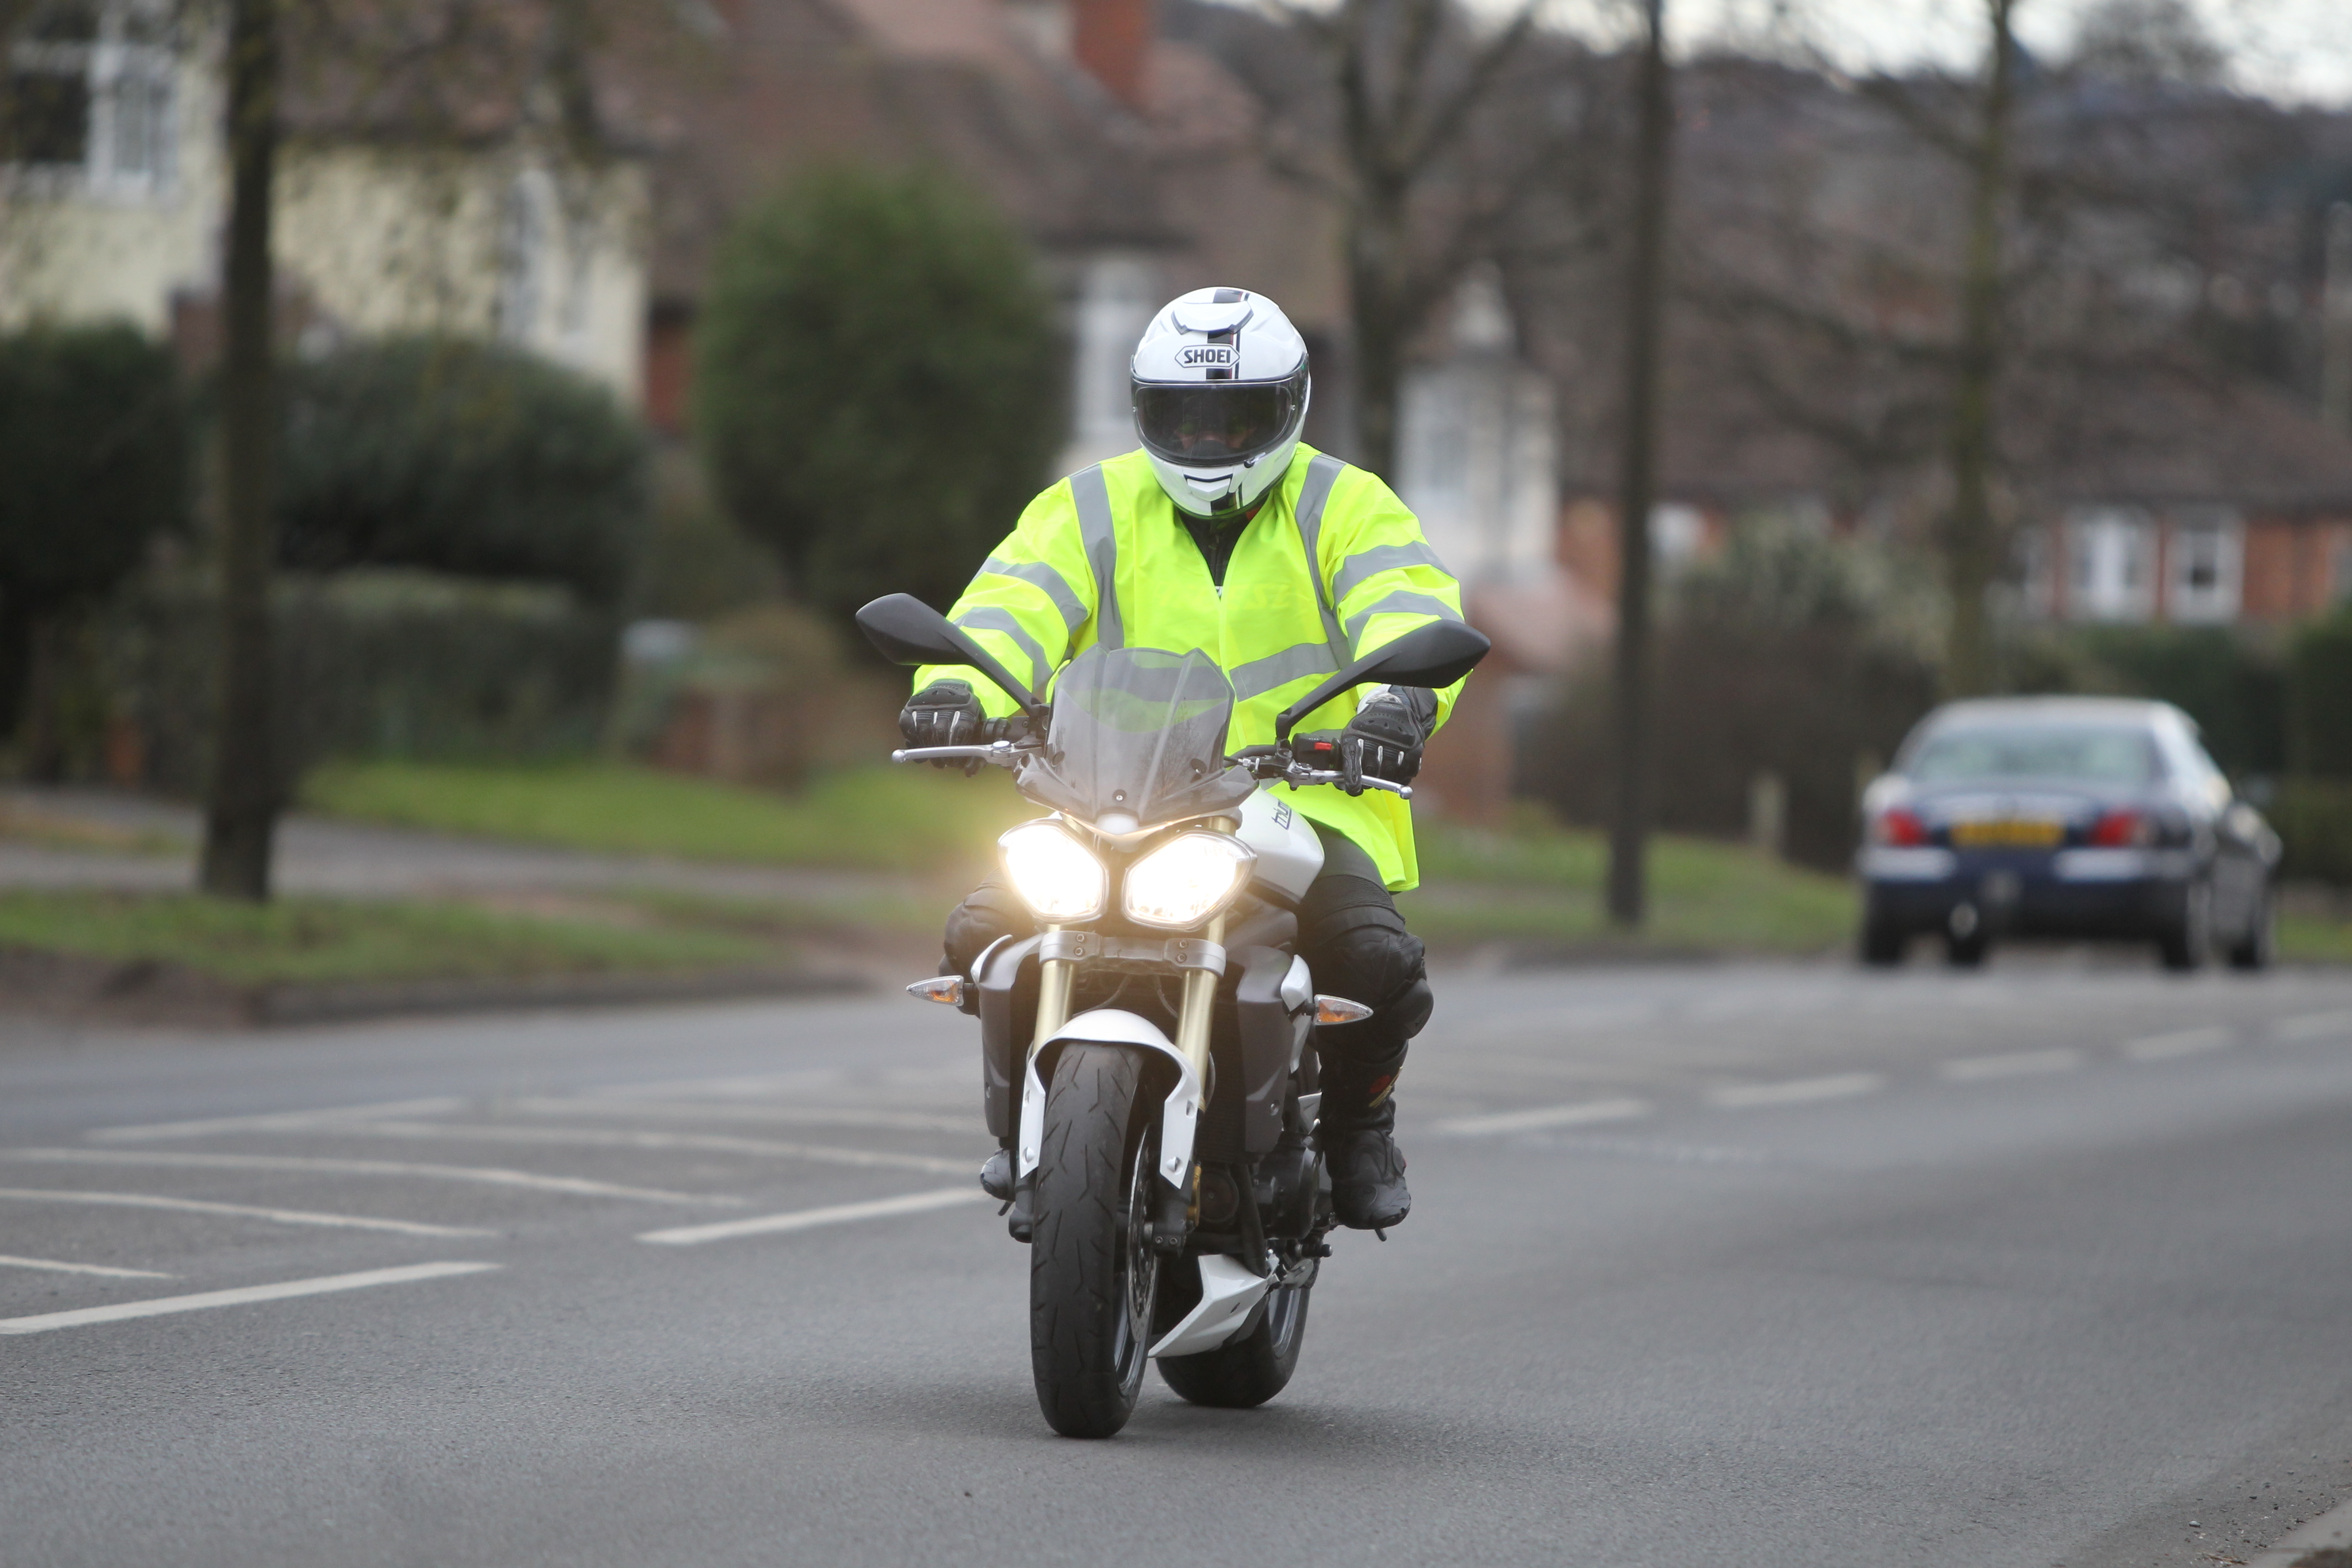 Safety Advice for Motorcyclists - West Midlands Fire Service